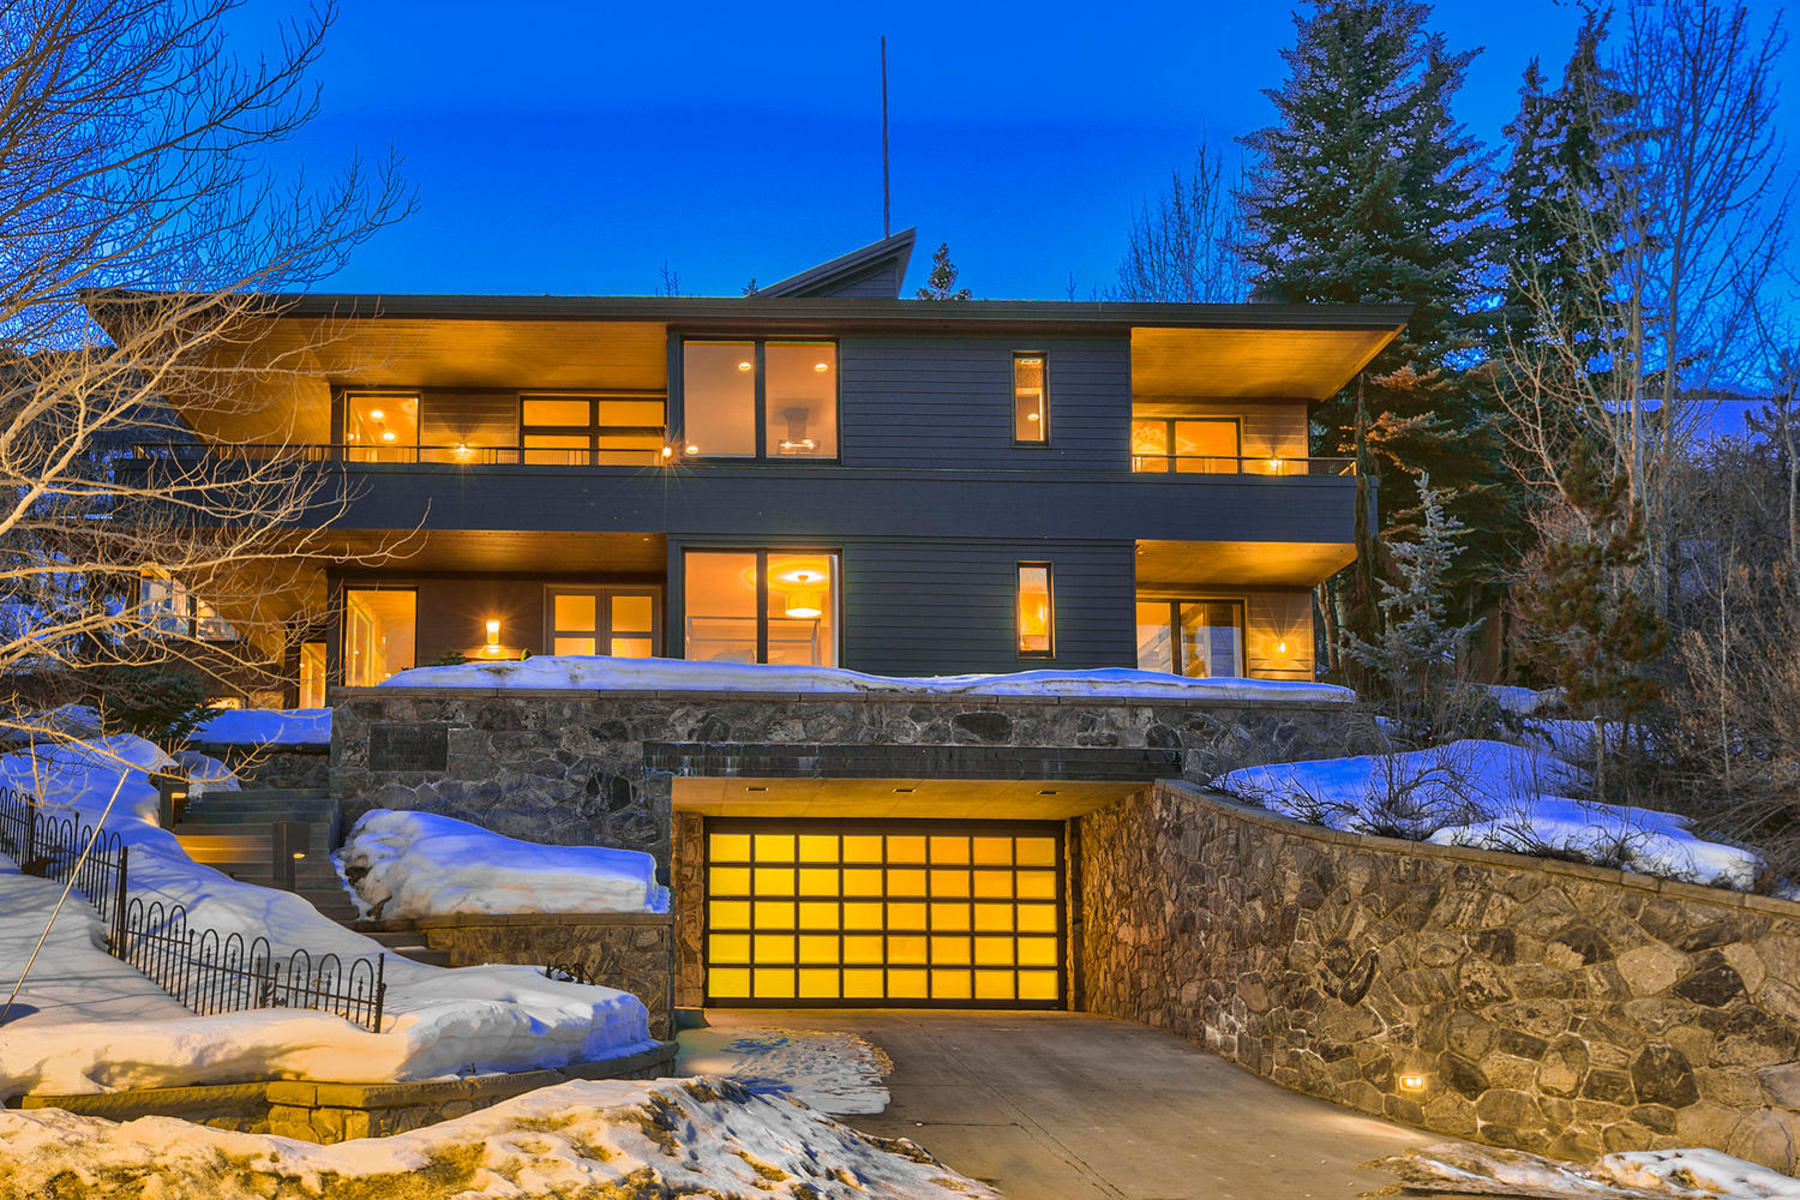 Casa Unifamiliar por un Venta en Beautifully Remodeled Home 2200 Morning Star Dr Park City, Utah 84060 Estados Unidos